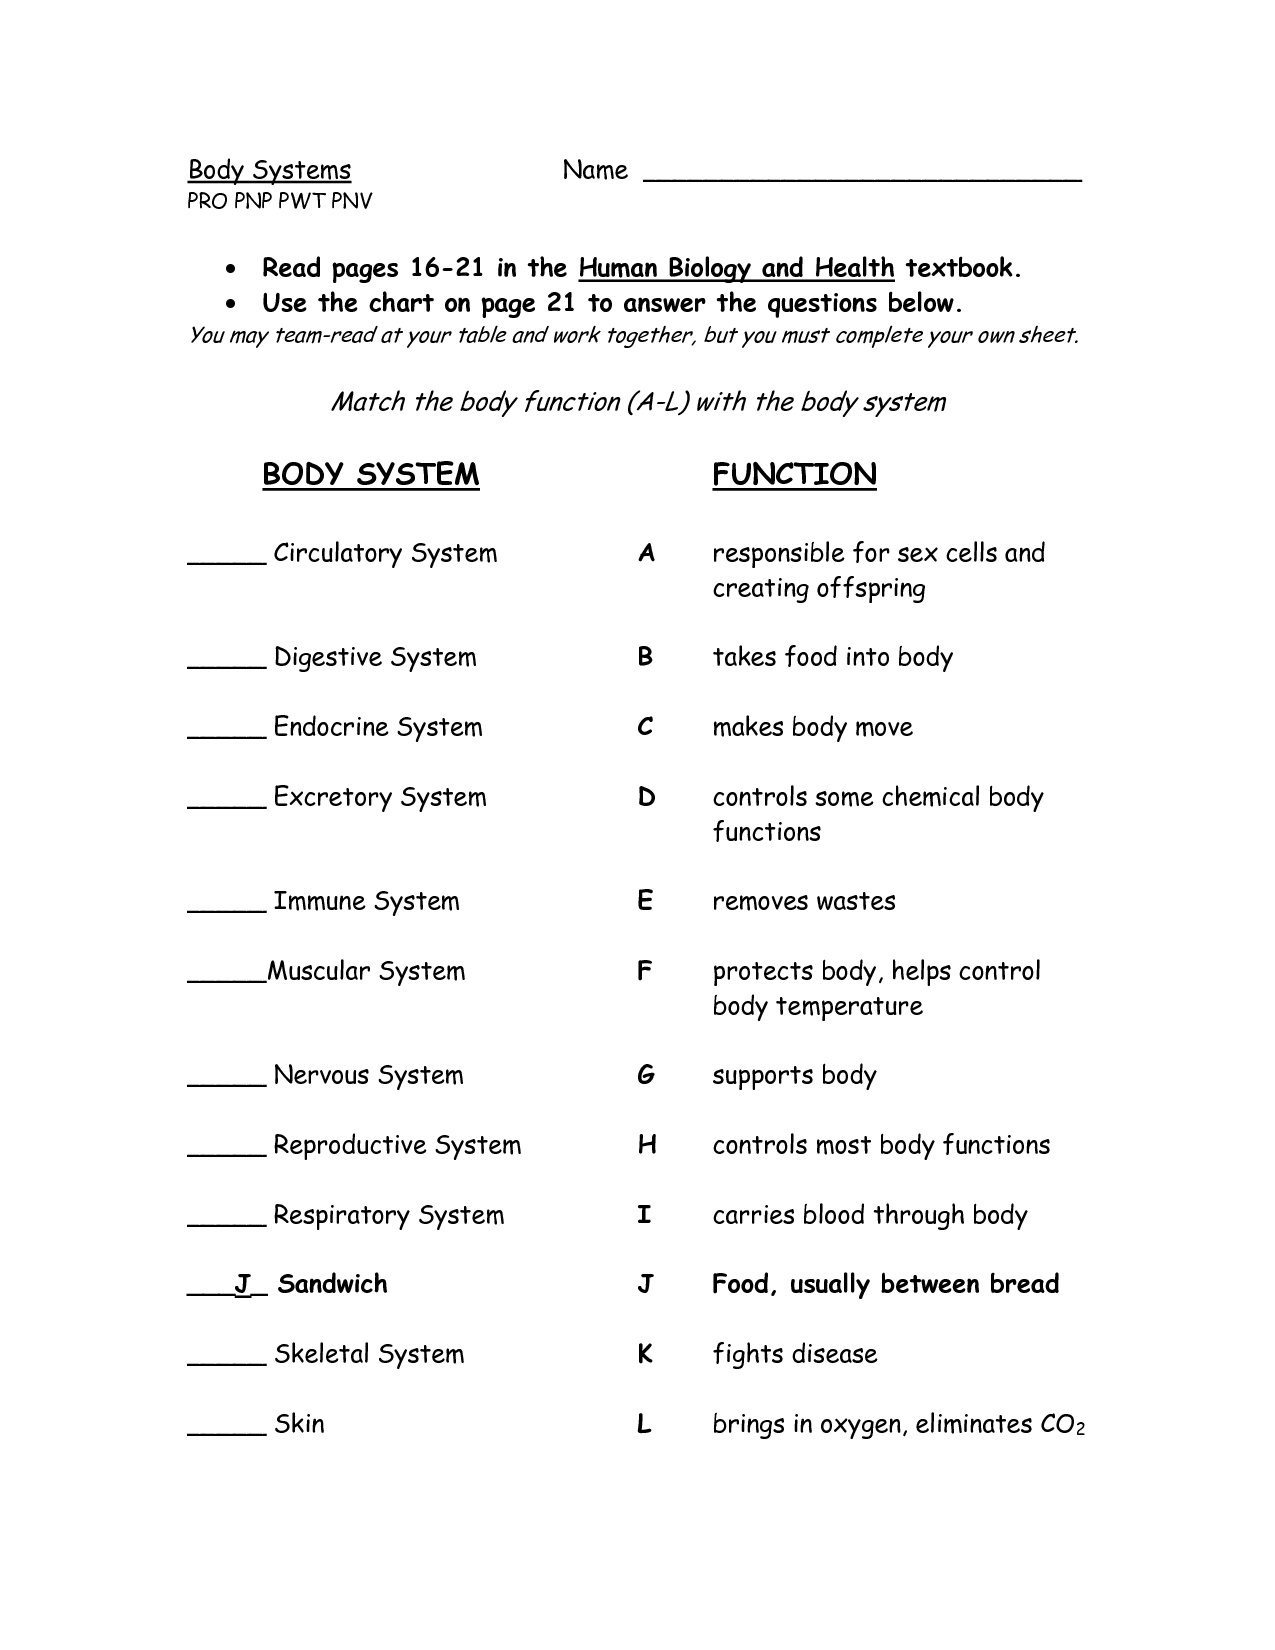 Body Systems And Functions Worksheets